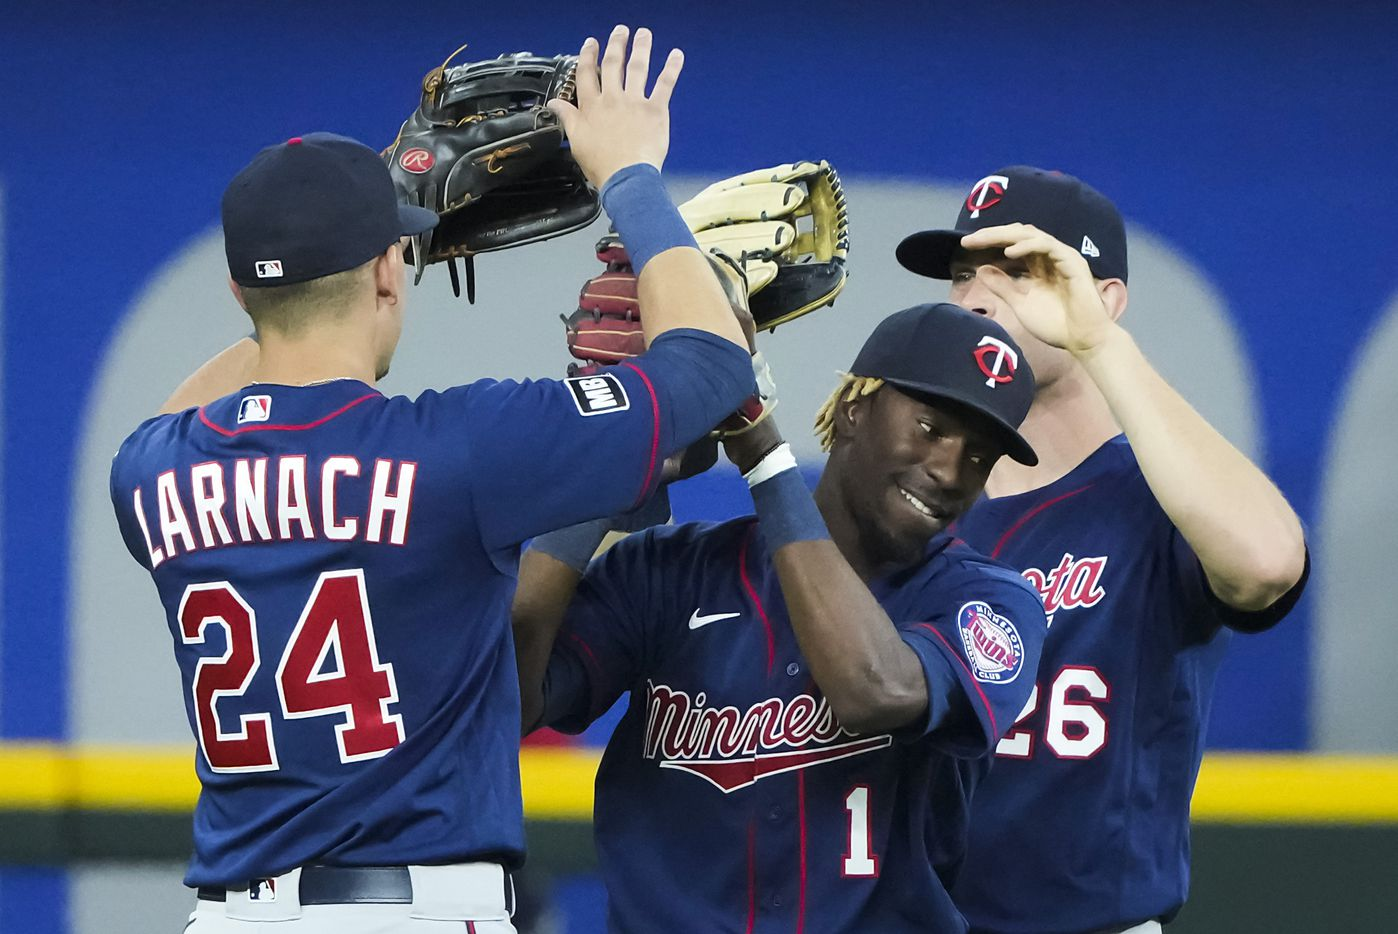 Minnesota Twins outfielders Nick Gordon (1), Trevor Larnach (24) and Max Kepler (26) celebrate after a victory over the Texas Rangers at Globe Life Field on Friday, June 18, 2021.